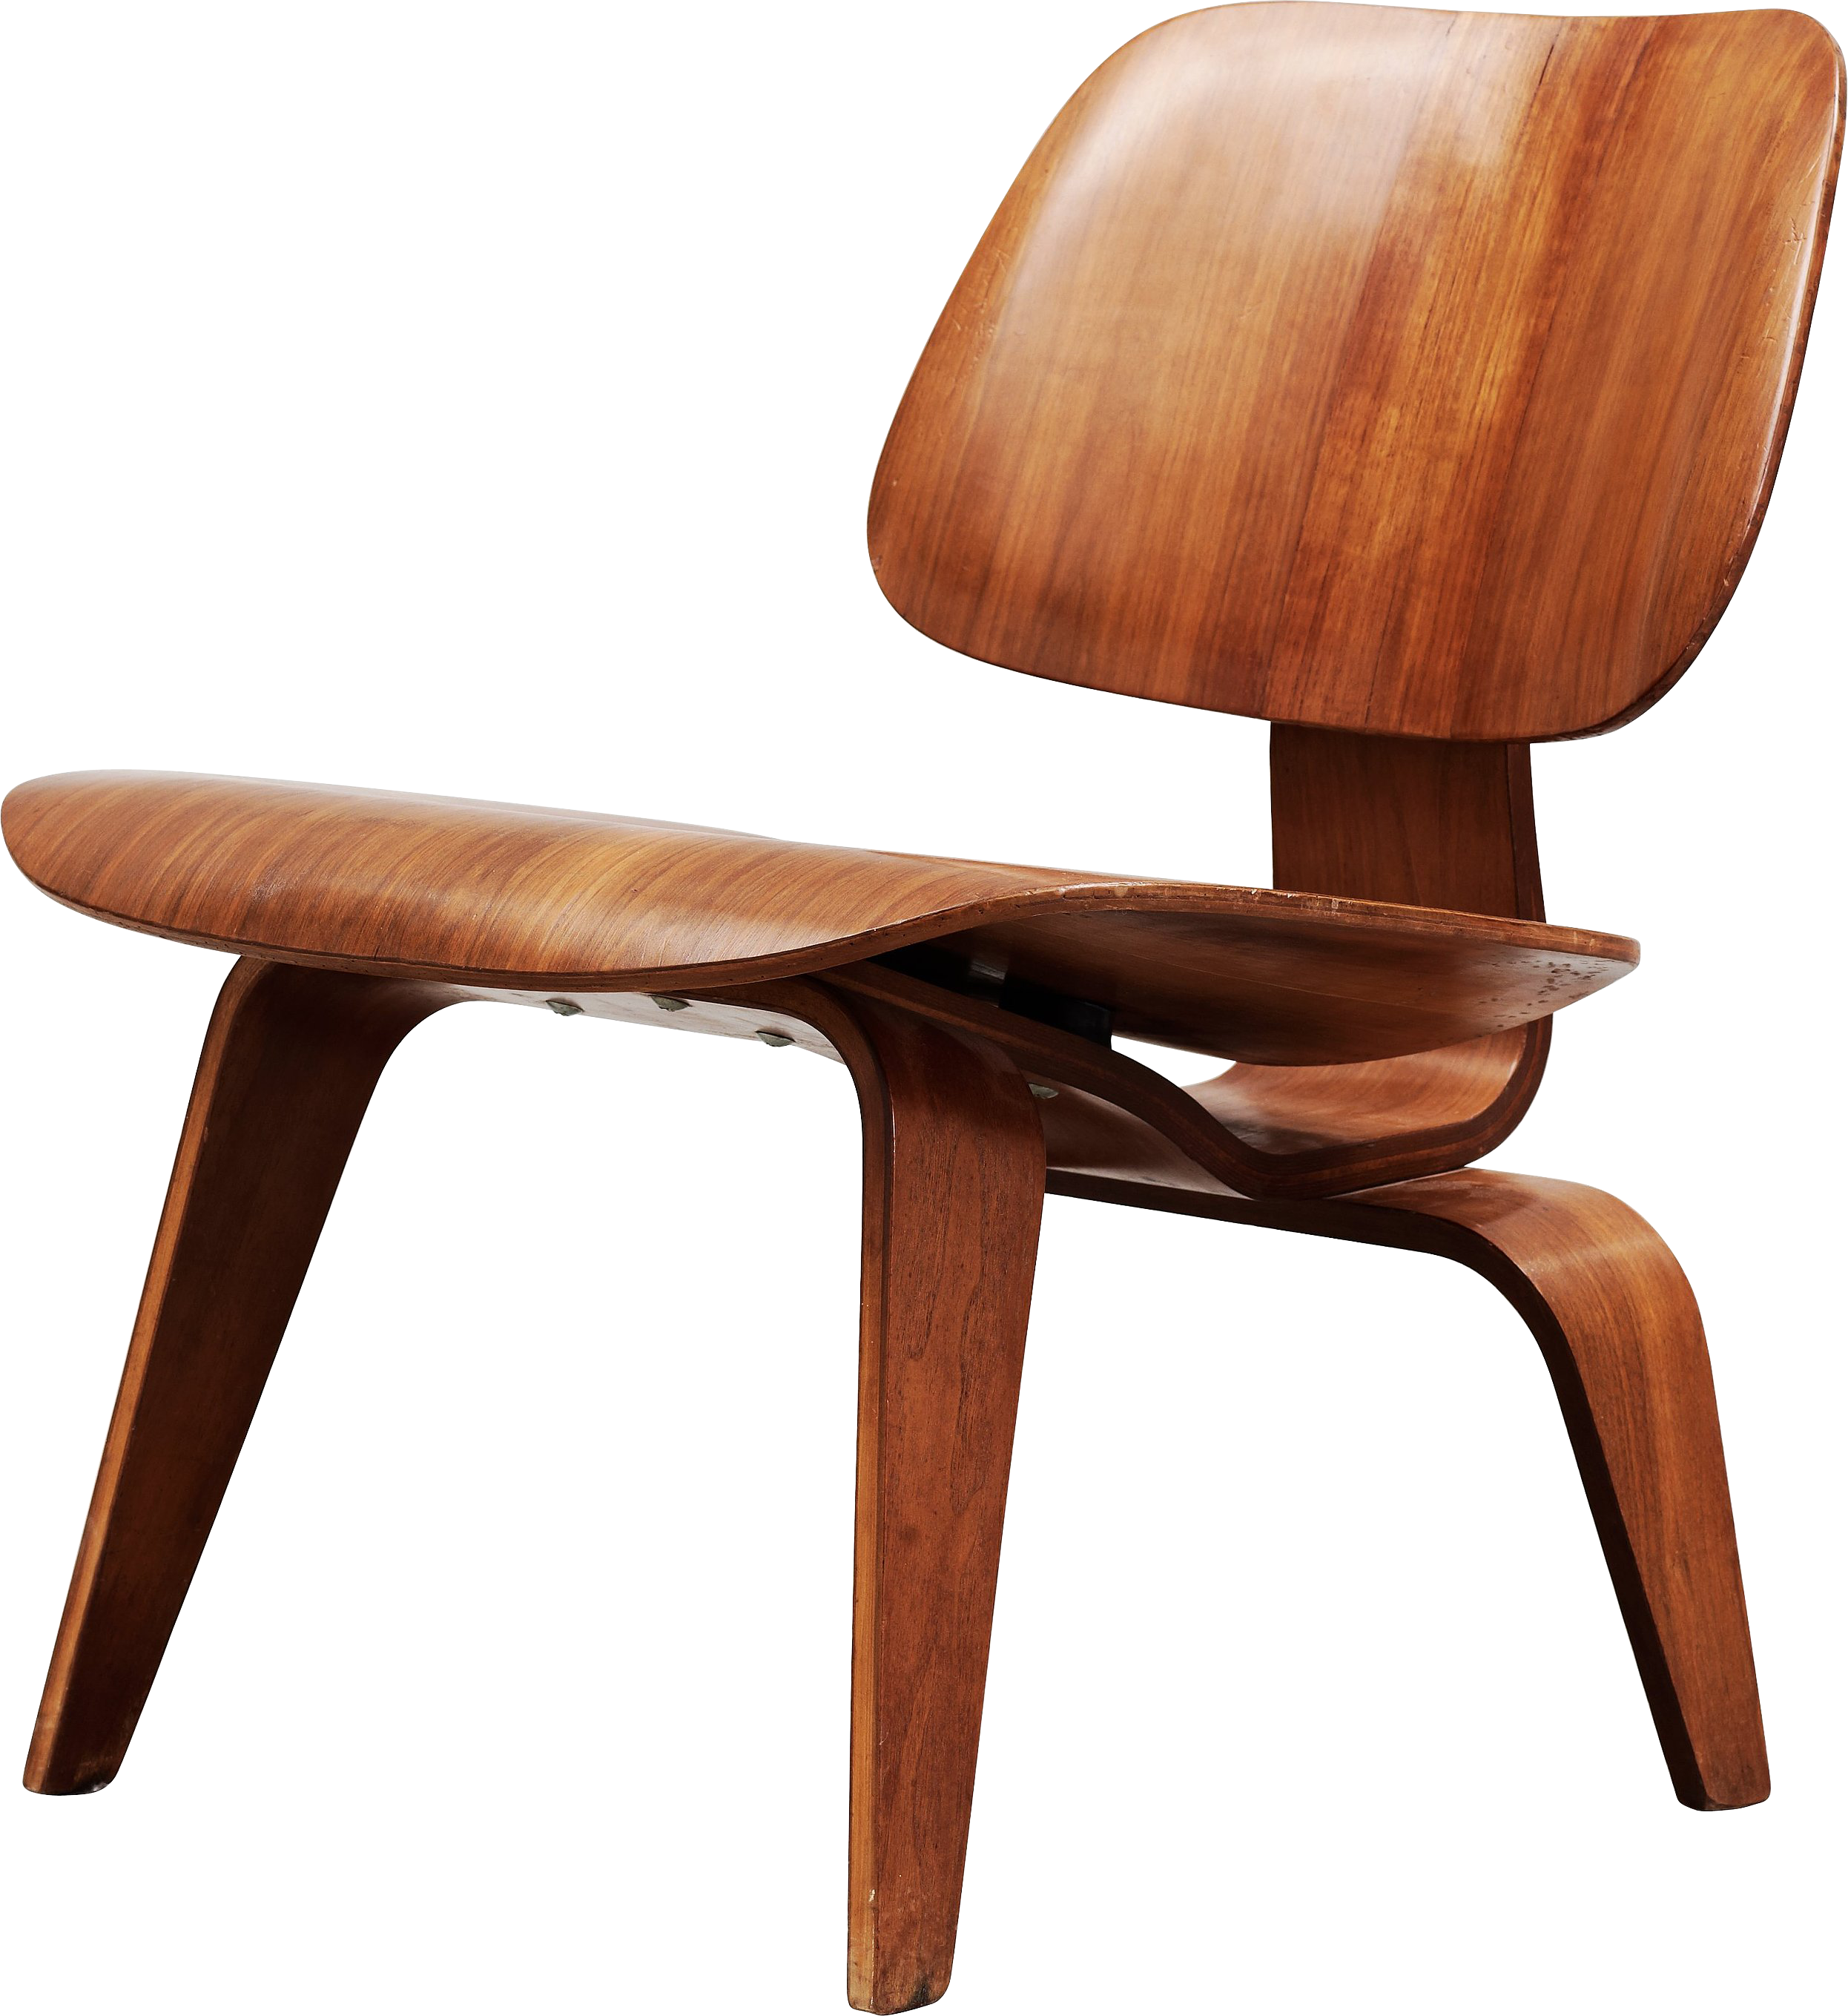 Wooden chair png. Images free download image